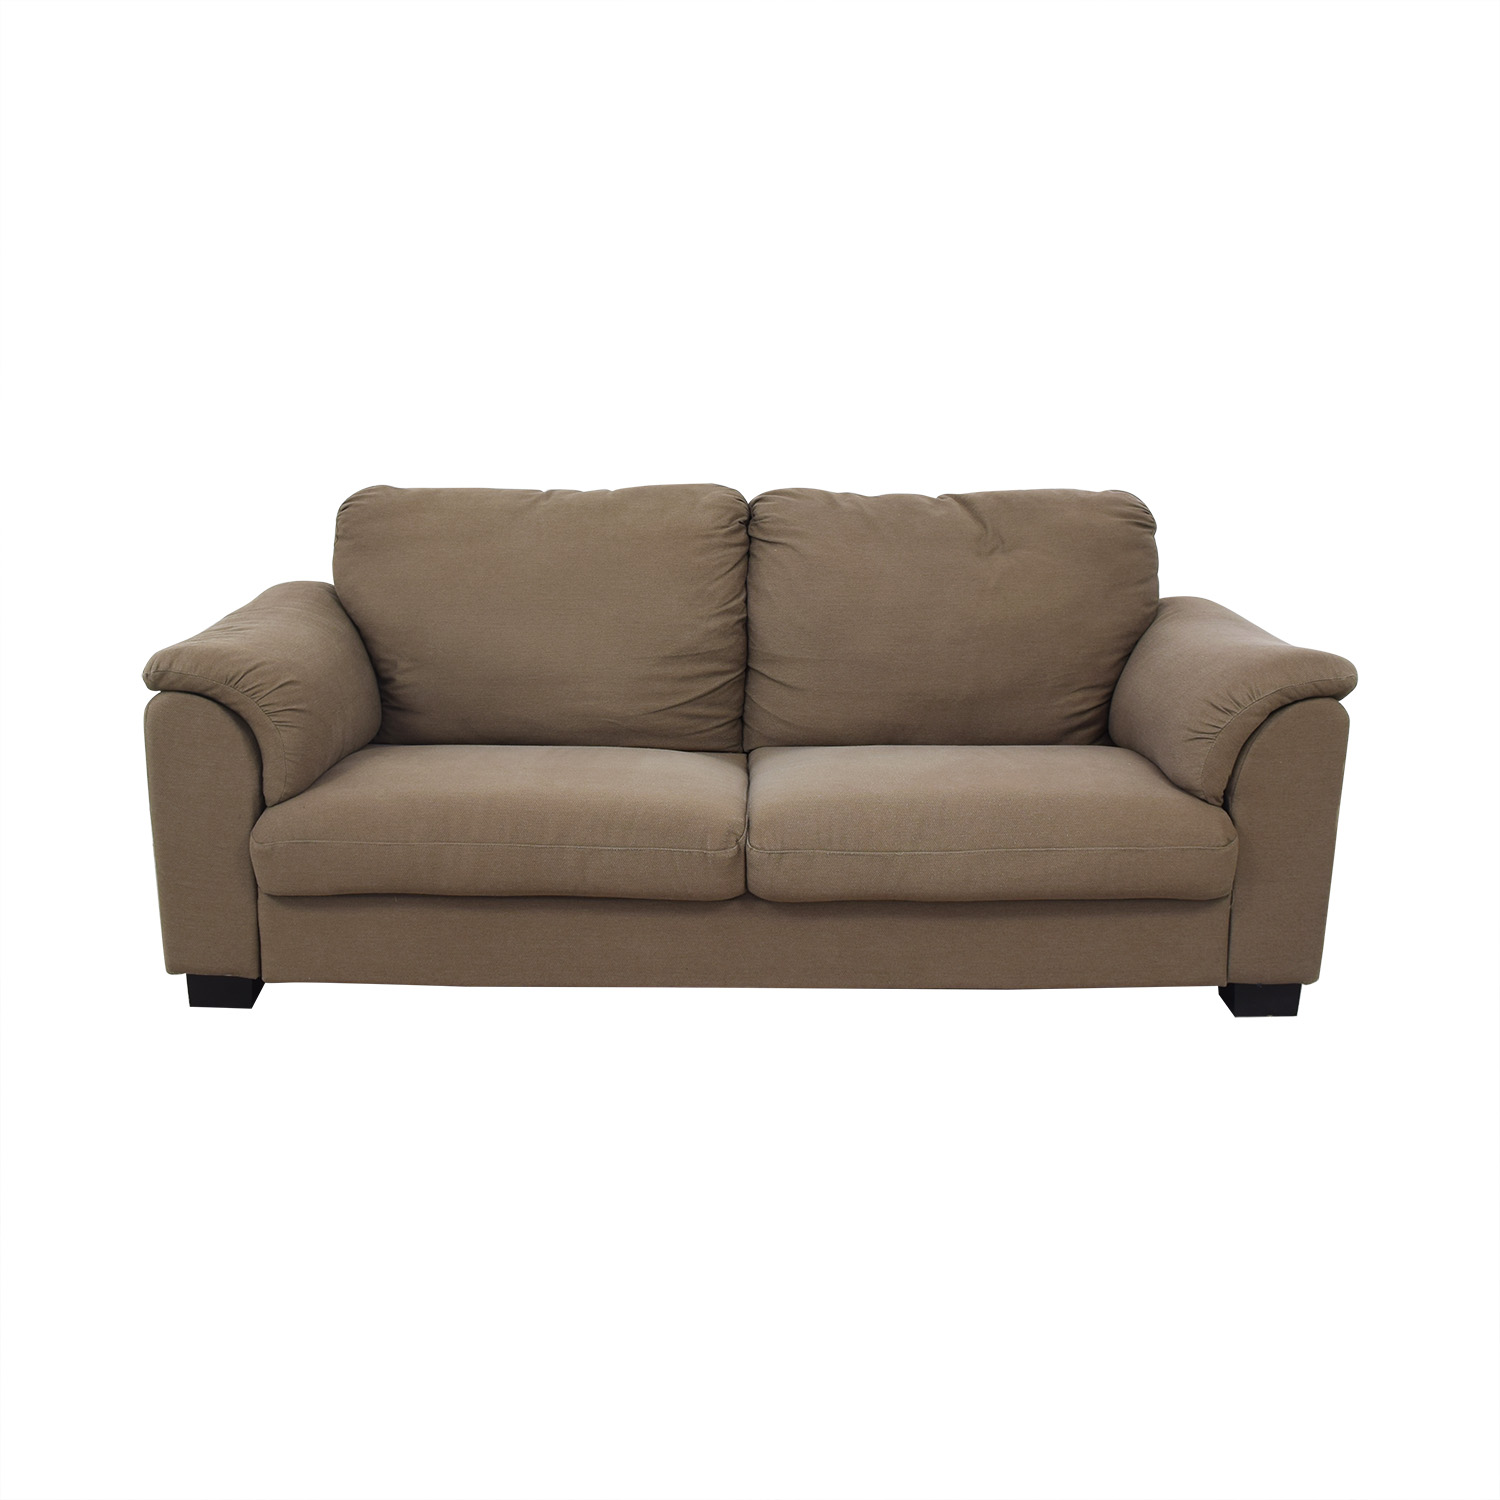 IKEA Ikea Tidafors Two Cushion Sofa on sale